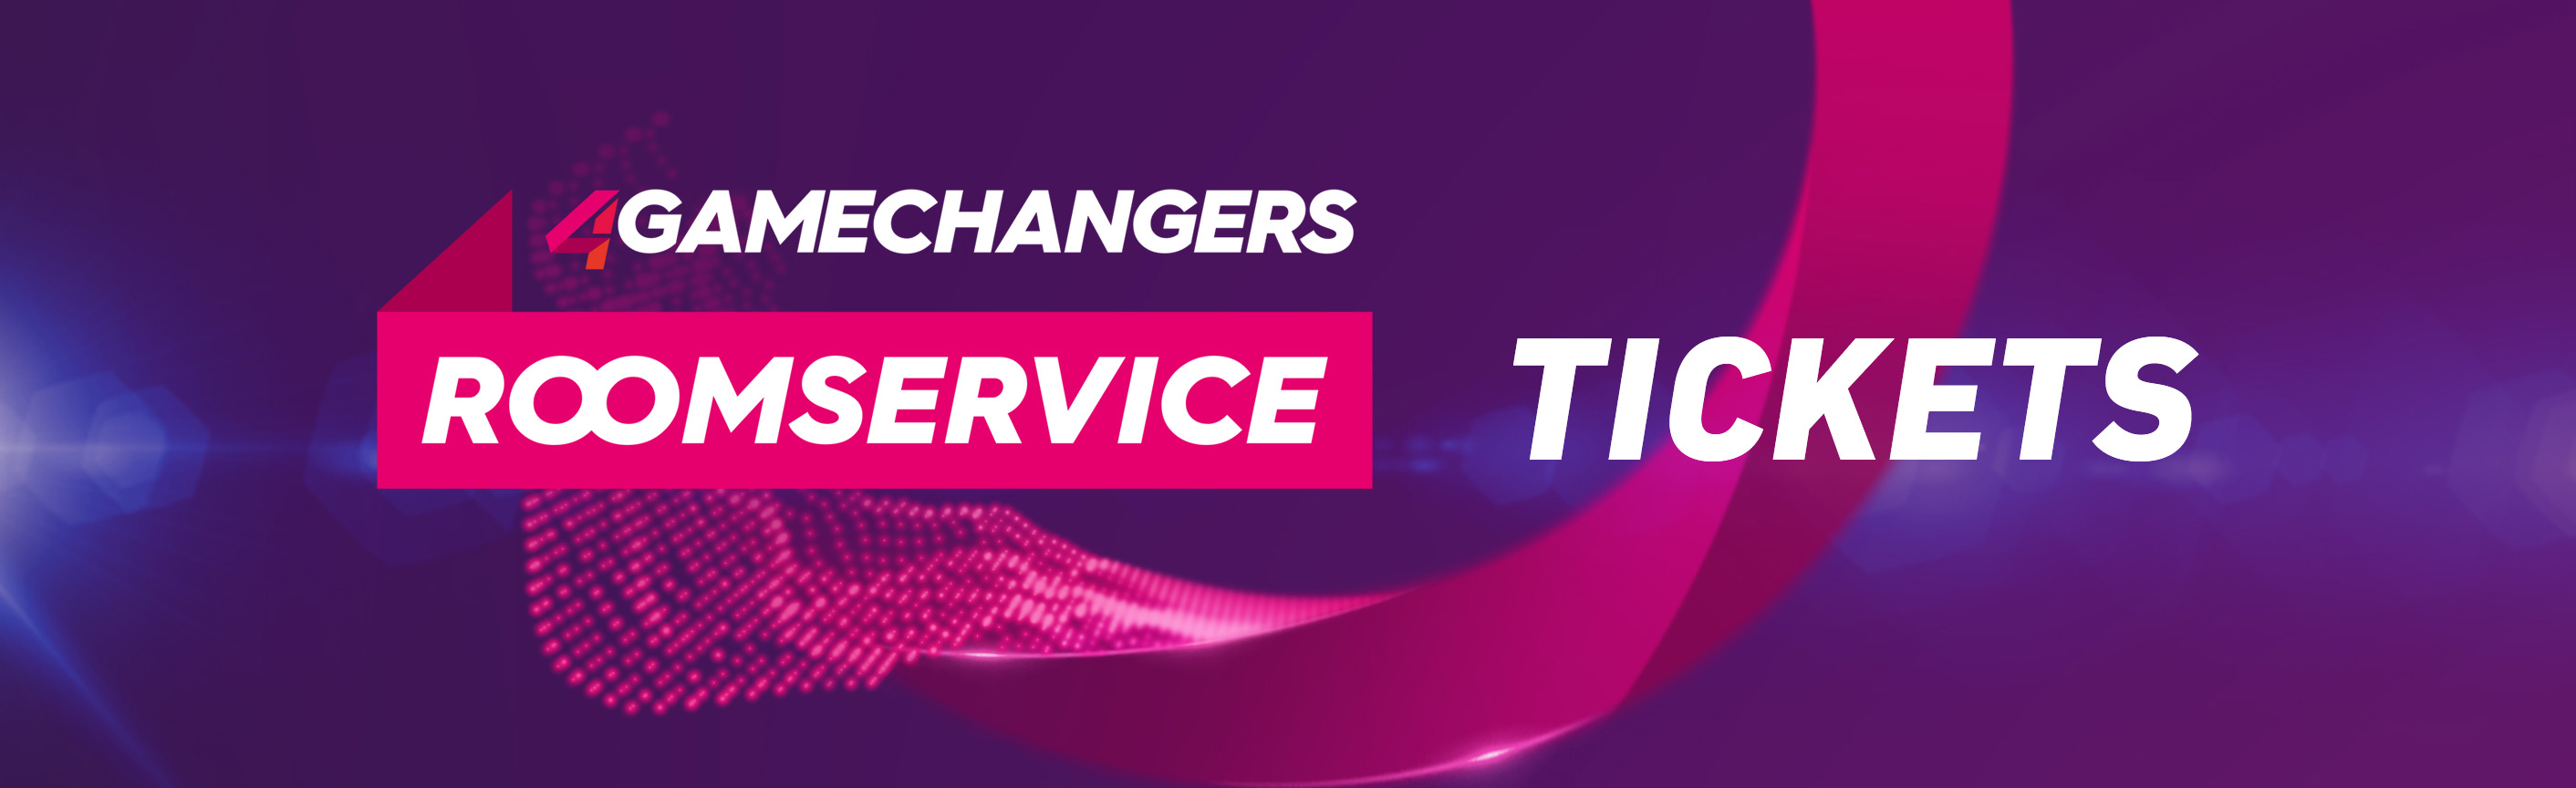 4GAMECHANGERS ROOMSERVIE TICKETS